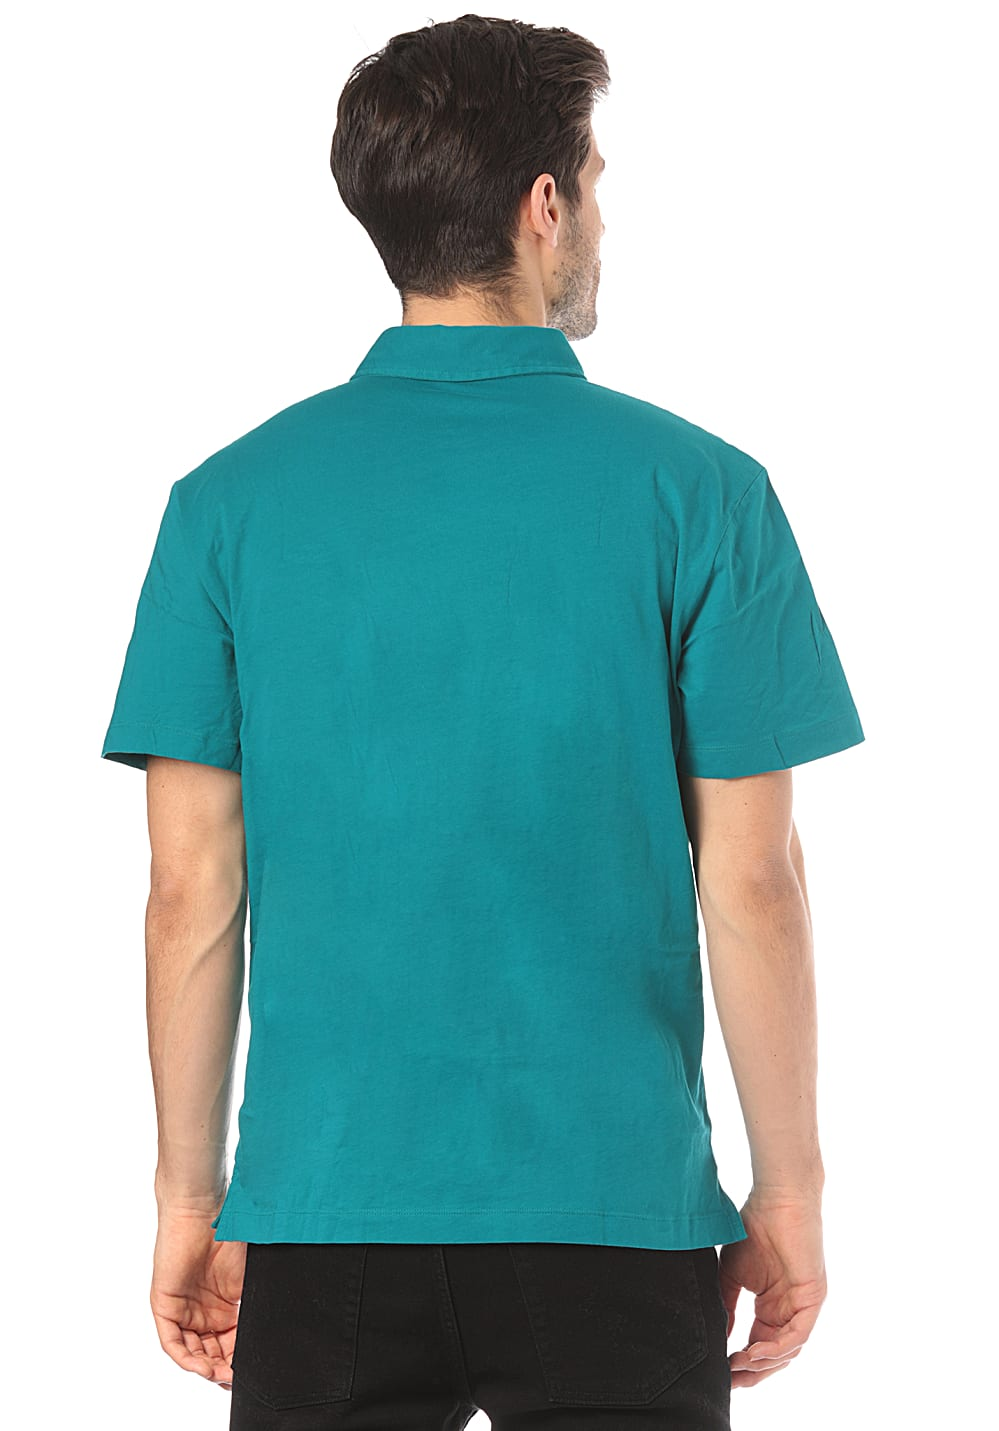 24f43848 Next. PATAGONIA. Trout Fitz Roy - Polo Shirt for Men. €49.95. incl. VAT  plus shipping costs. Size Chart